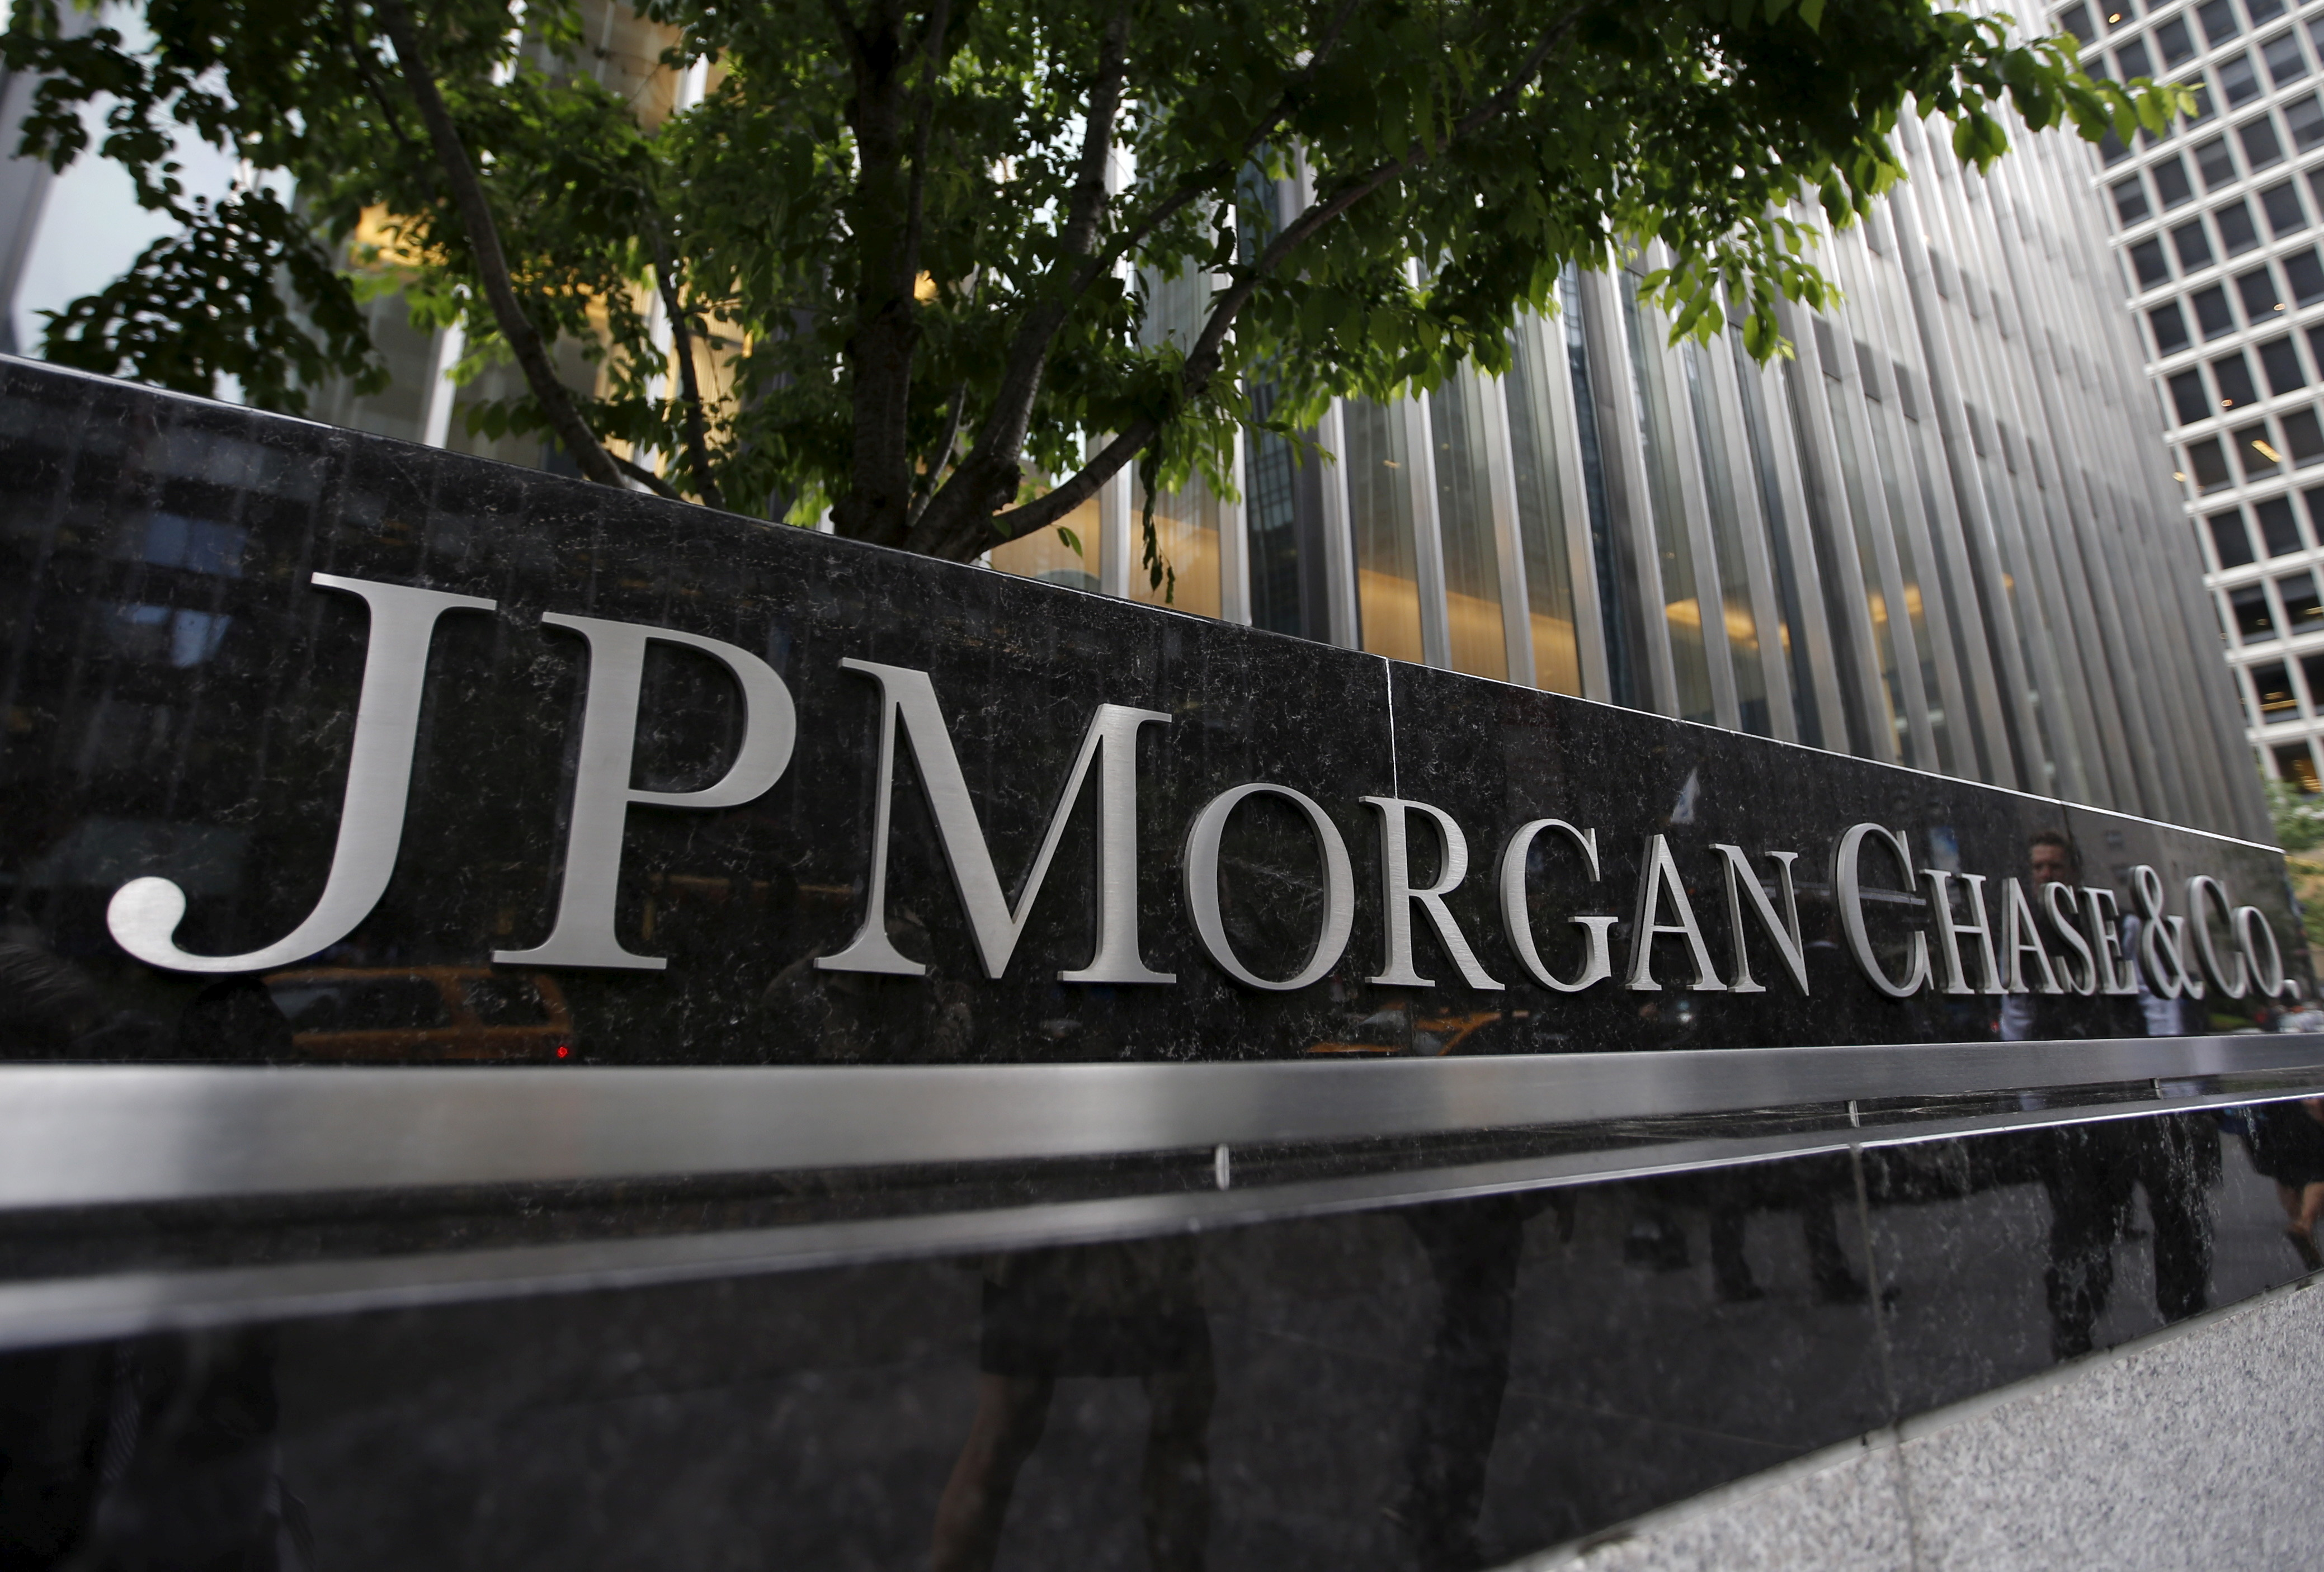 A view of the exterior of the JP Morgan Chase & Co. corporate headquarters in New York City May 20, 2015.  REUTERS/Mike Segar/Files/File Photo